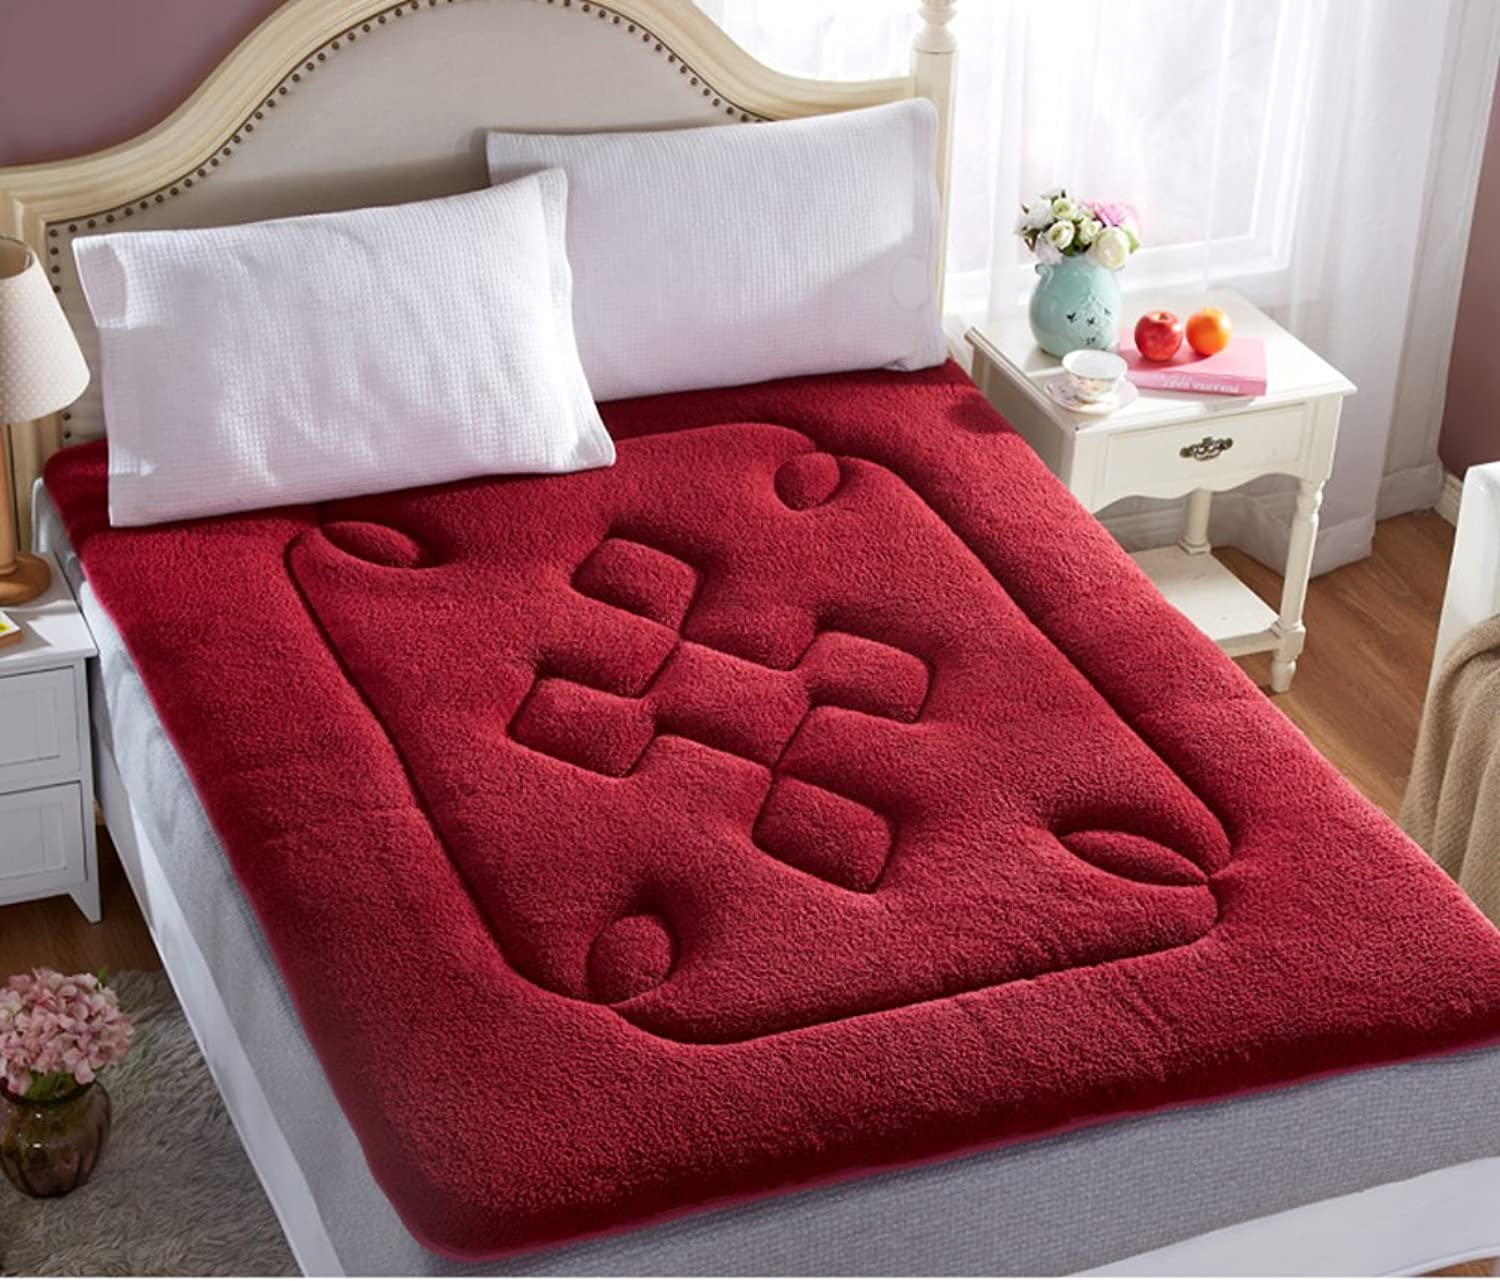 Tatami Mattress Velvet Mattress Student Dormitory Bed mat Single and Double Sponge Pads are Padded Mattress-A 120x200cm(47x79inch)